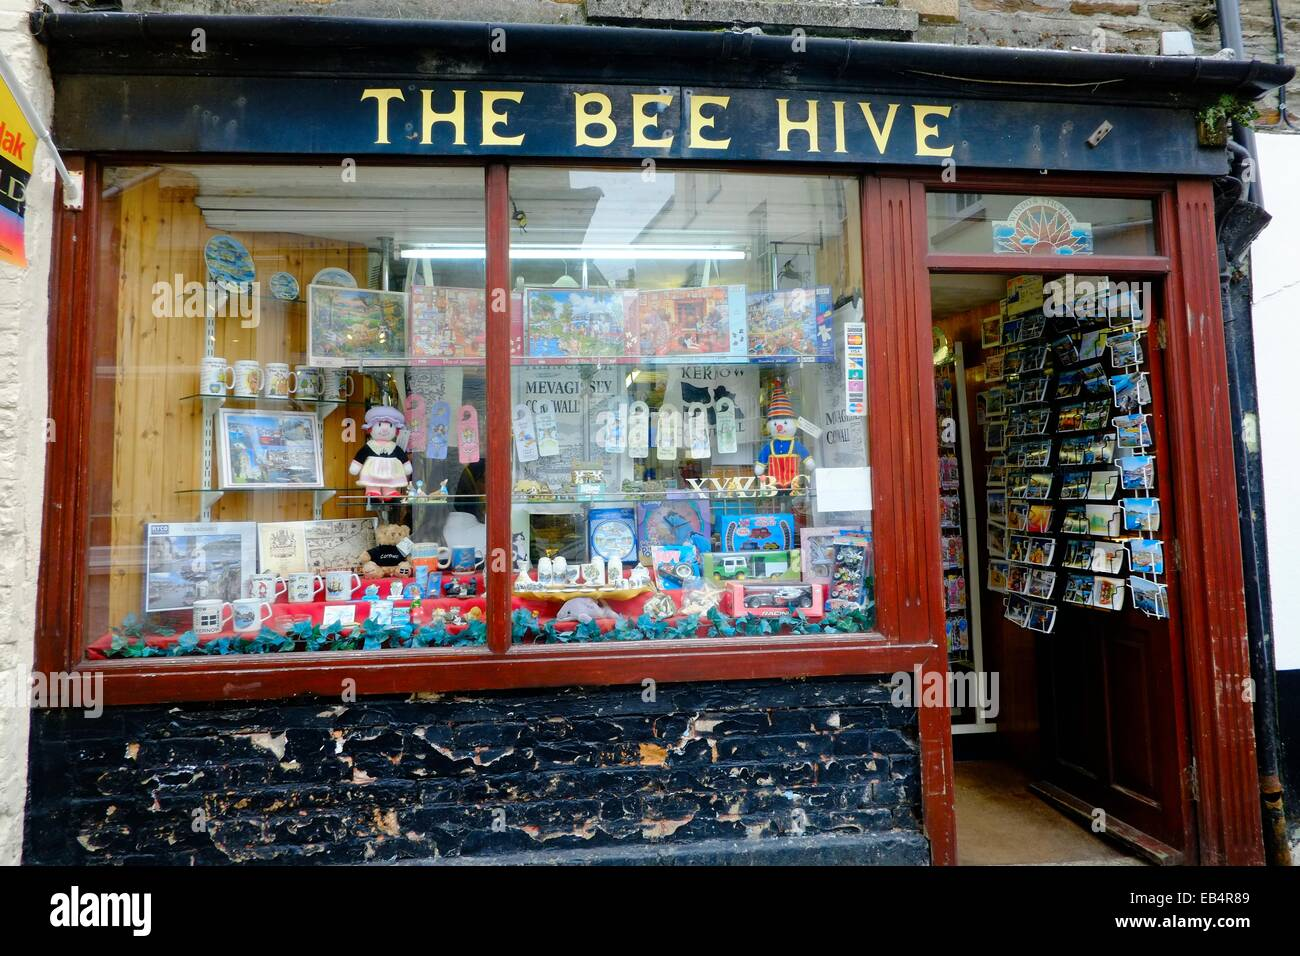 The Bee Hive seaside holiday gift shop in Mevagissey, Cornwall,England UK - Stock Image